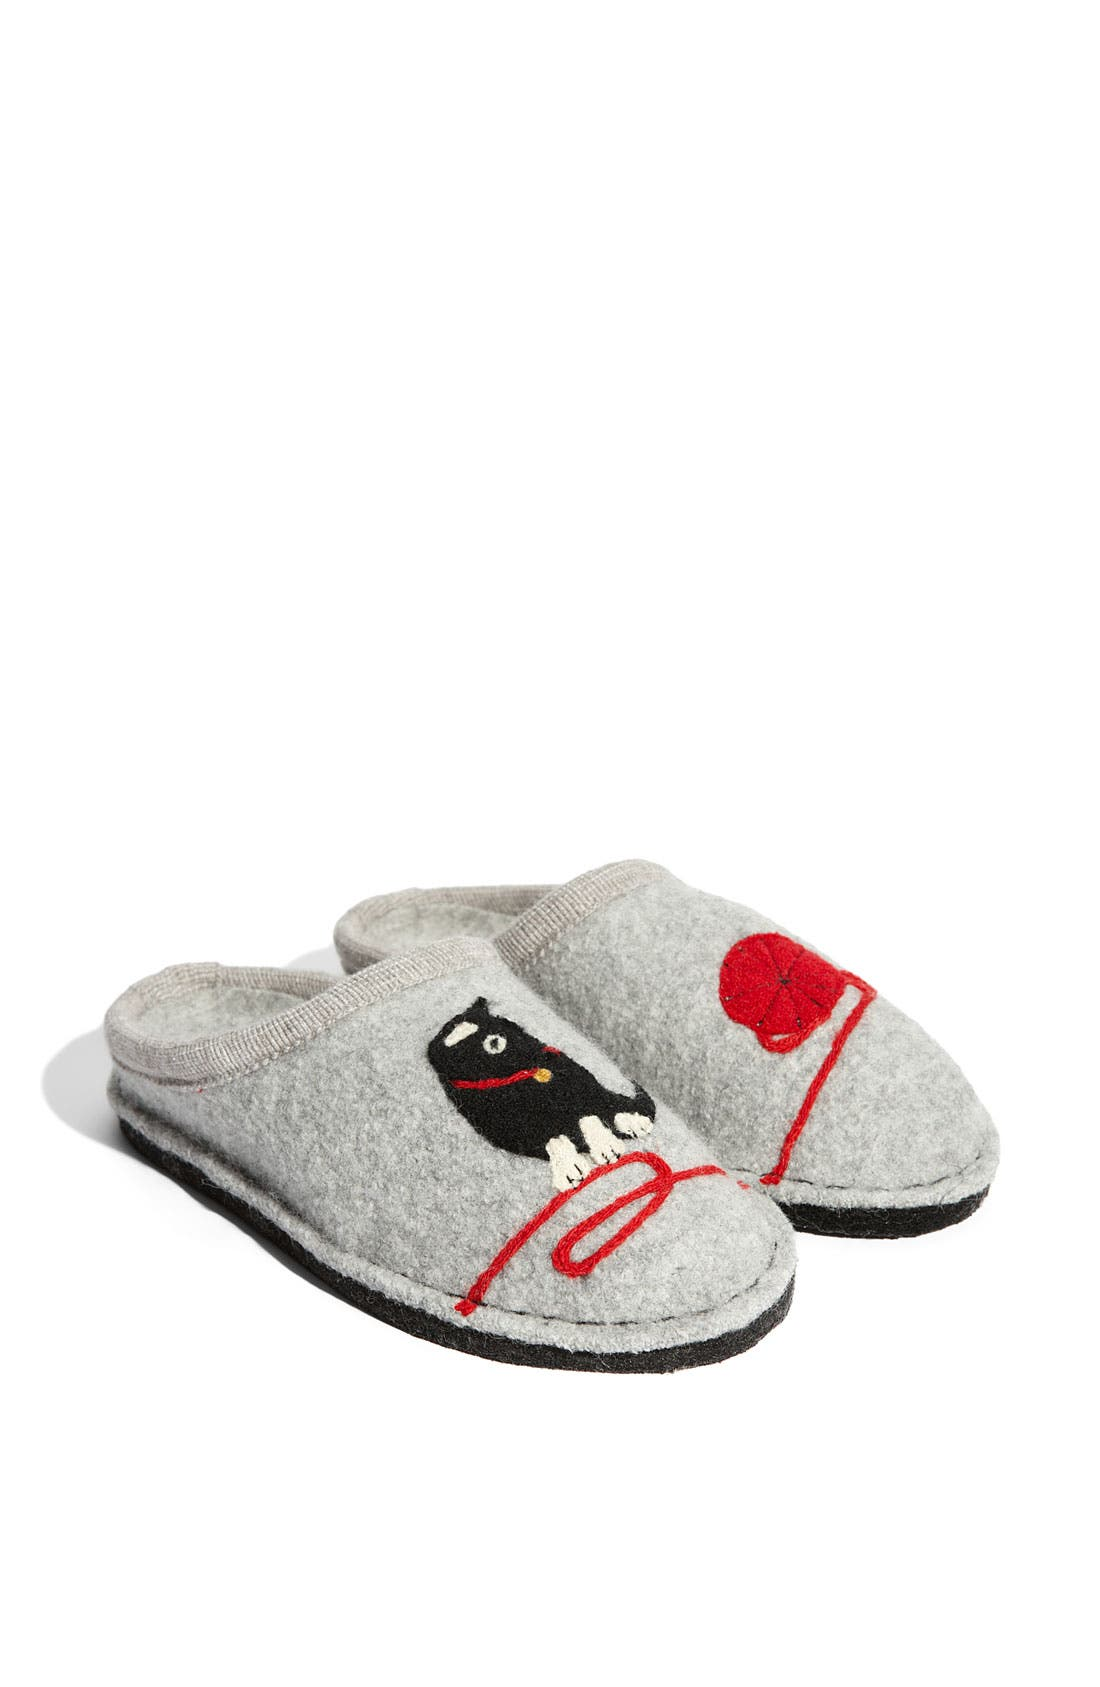 Haflinger 'Kitty' Slipper